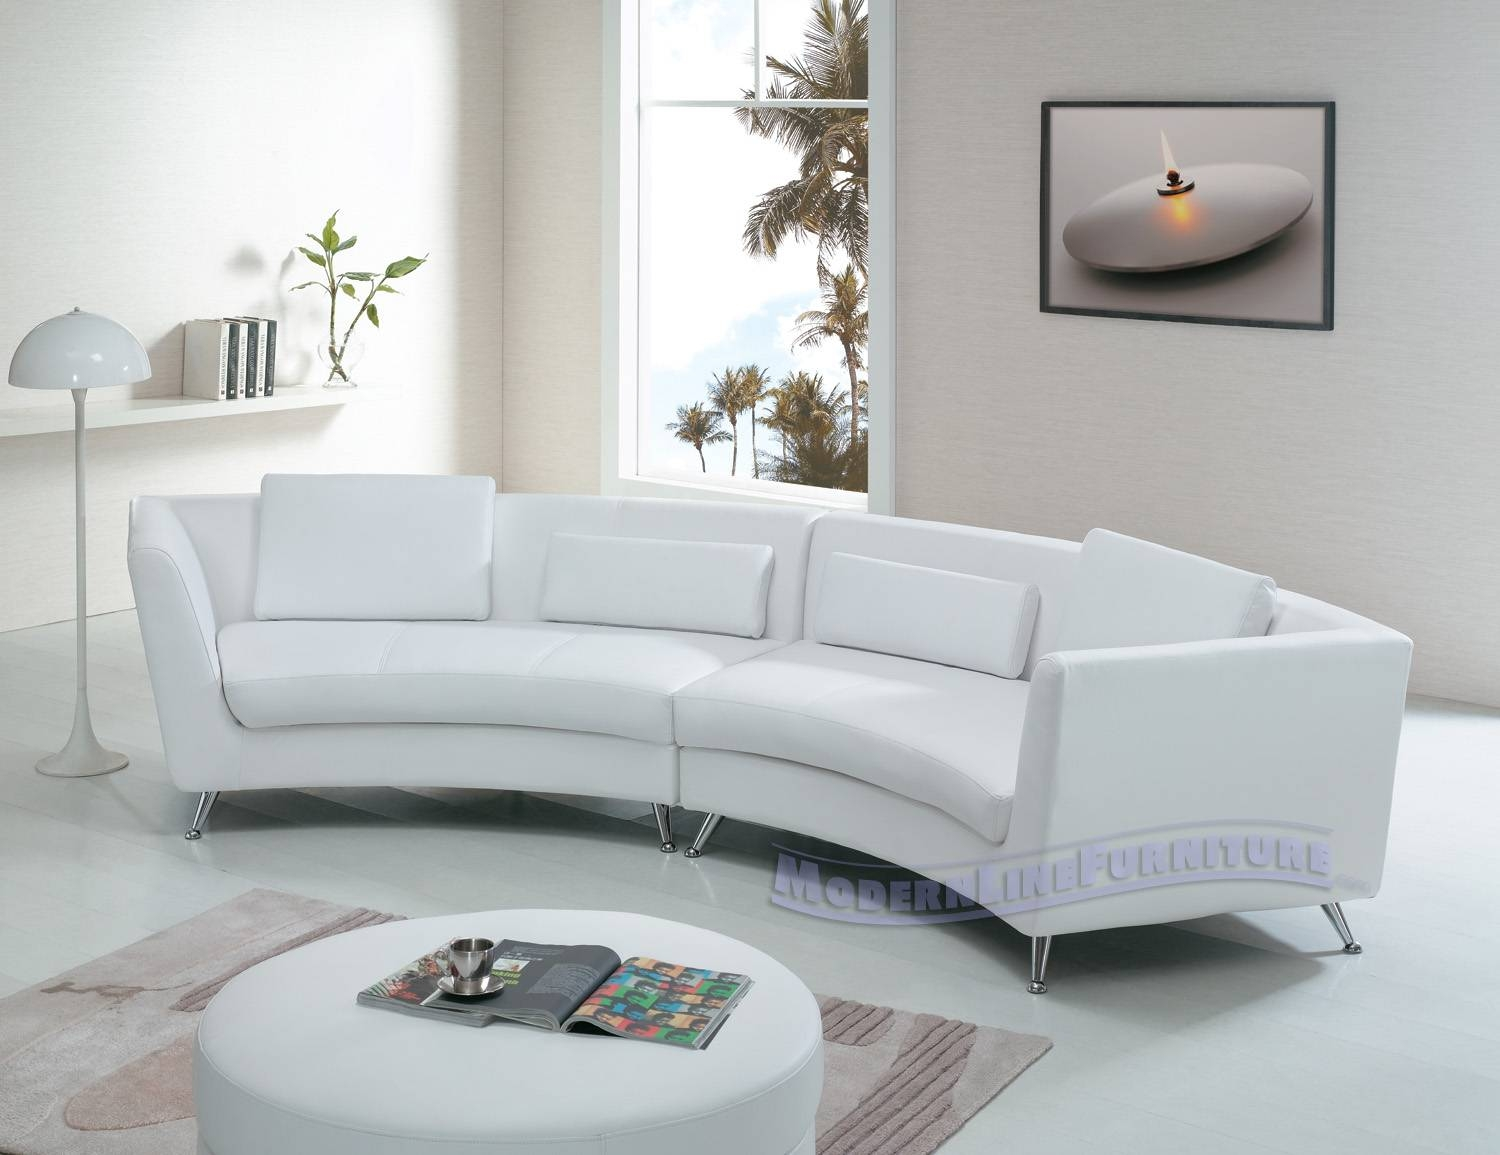 Modern Line Furniture - Commercial Furniture - Custom Made intended for Contemporary Curved Sofas (Image 28 of 30)